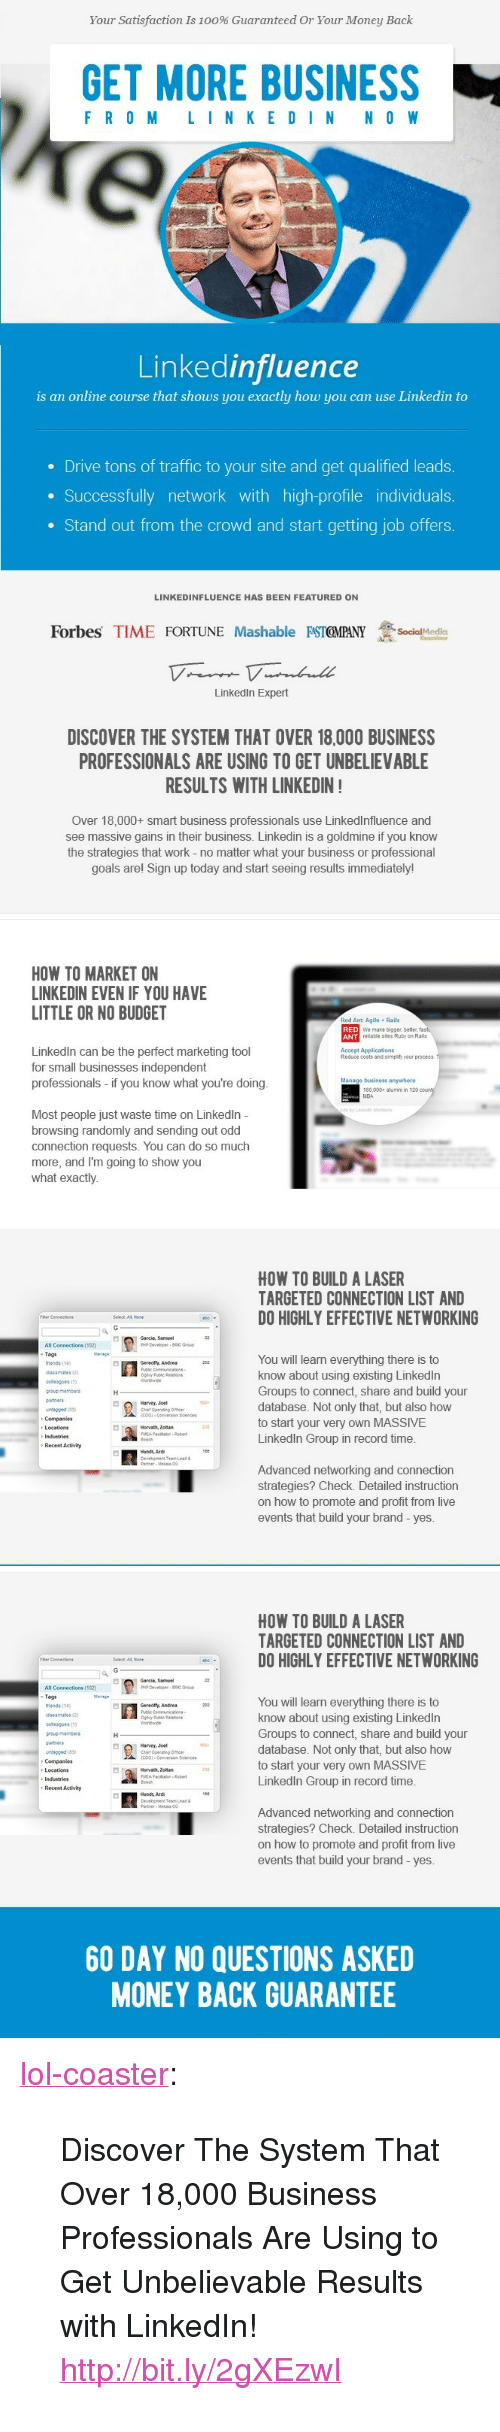 Anaconda, Goals, and LinkedIn: Your Satisfaction is 100% Guaranteed Or Your Money Back  GET MORE BUSINESS  F RO M L I N K E DI N N O W  Linkedinfluence  is an online course that shows you exactly how you can use Linkedin to  Drive tons of traffic to your site and get qualified leads.  Successfully network with high-profile individuals  . Stand out from the crowd and start getting job offers  LINKEDINFLUENCE HAS BEEN FEATURED ON  Forbes TIME FORTUNE Mashable PSIGMPANY  Soimedia  Examiner  Linkedin Expert  DISCOVER THE SYSTEM THAT OVER 18,000 BUSINESS  PROFESSIONALS ARE USING TO GET UNBELIEVABLE  RESULTS WITH LINKEDIN  Over 18,000+ smart business professionals use Linkedlnfluence and  see massive gains in their business. Linkedin is a goldmine if you know  the strategies that work - no matter what your business or professional  goals arel Sign up today and start seeing results immediately!   HOW TO MARKET ON  LINKEDIN EVEN IF YOU HAVE  LITTLE OR NO BUDGET  Red Ant: Agile  RED  ANT  Rails  we make bigger, beter  reliable st03 Ruby on Rails  Linkedln can be the perfect marketing tool  for small businesses independent  professionals - if you know what you're doing  Accept Applications  Reduce costs and simplify your process  Manage business anywhere  160,000-alumni in 120  MBA  Most people just waste time on Linkedln  browsing randomly and sending out odd  connection requests. You can do so much  more, and I'm going to show you  what exactly  HOW TO BUILD A LASER  TARGETED CONNECTION LIST AND  DO HIGHLY EFFECTIVE NETWORKING  FRer Connections  Select At Non  Garcia, Sameel  All Connections (102)  Tags  Manage  You will learn everything there is to  know about using existing Linkedln  Groups to connect, share and build your  database. Not only that, but also how  to start your very own MASSIVE  Linkedln Group in record time  Gereofty, Andrea  nds 14)  dassmates (2)  roup mamer  parnners  unggea(83  Harvey, Joe  Chef Operalting Omper  COO) Coversion Scences  Honan, Zoltan  